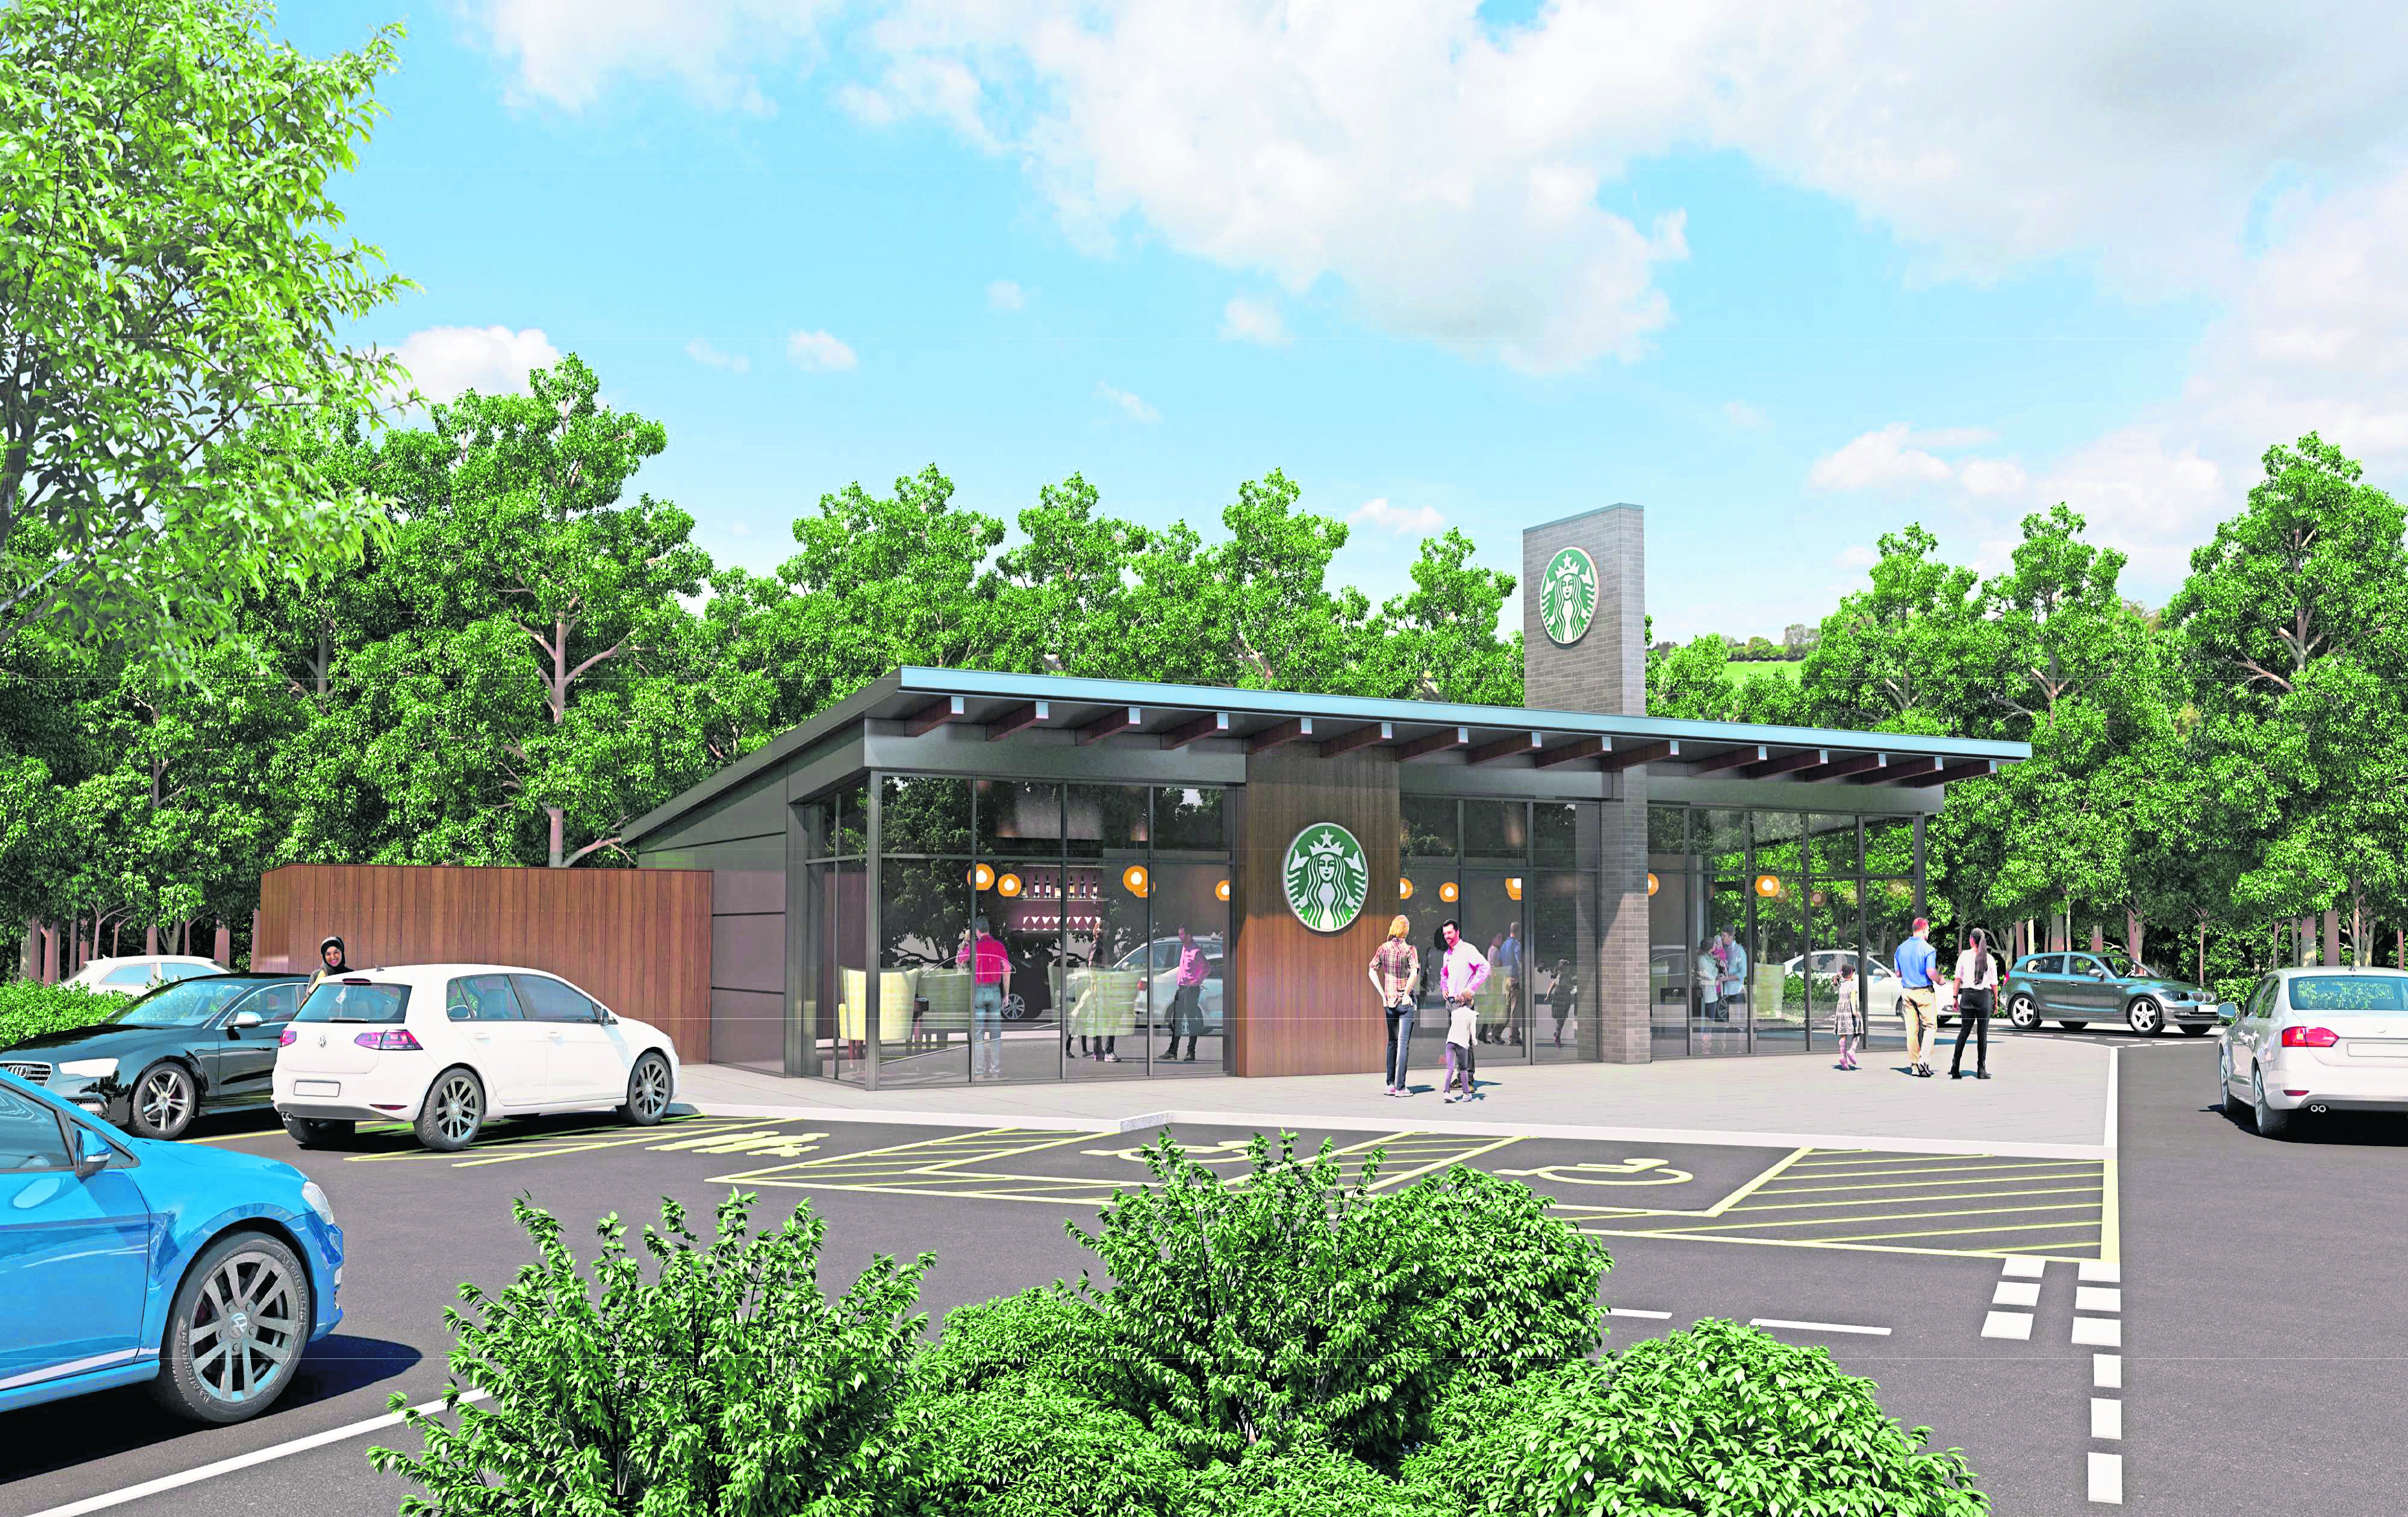 Artists illustration of a proposed new Starbucks on Afton Way, Dundee.